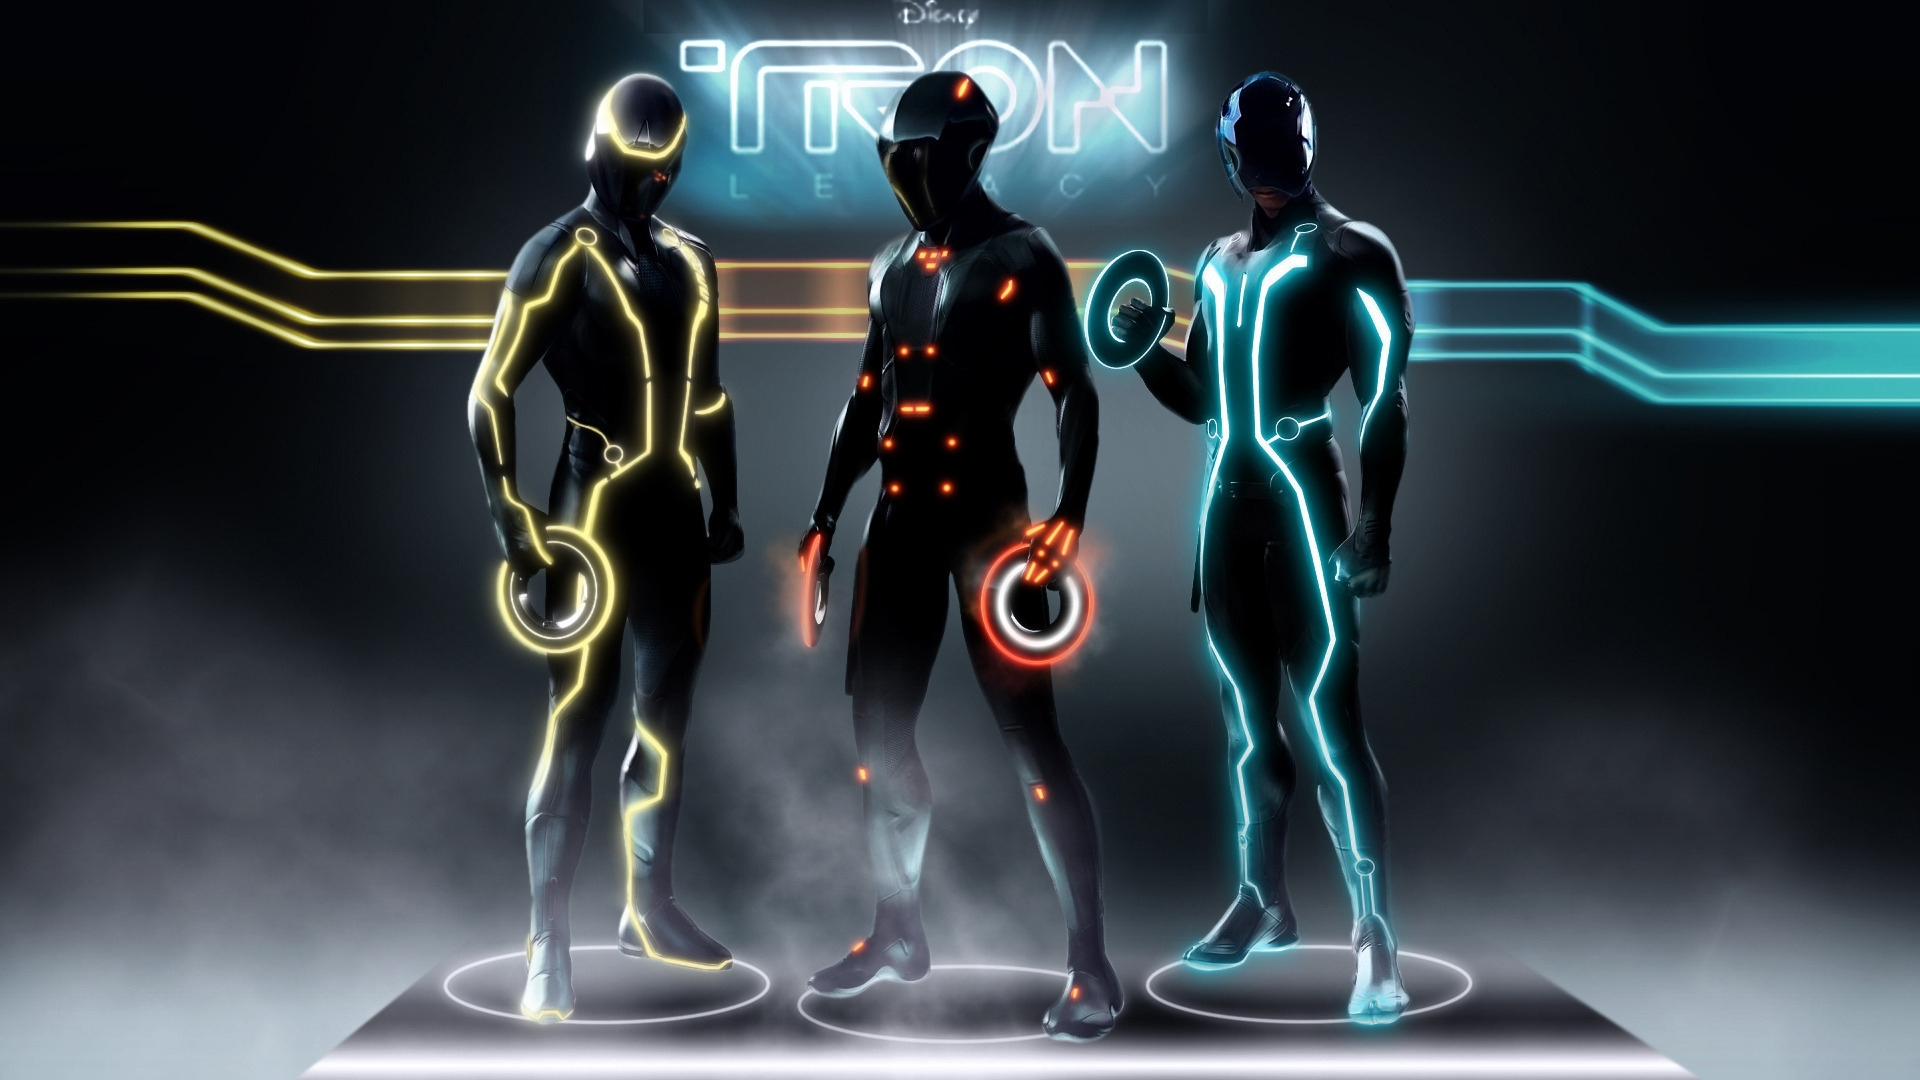 tron hd wallpaper